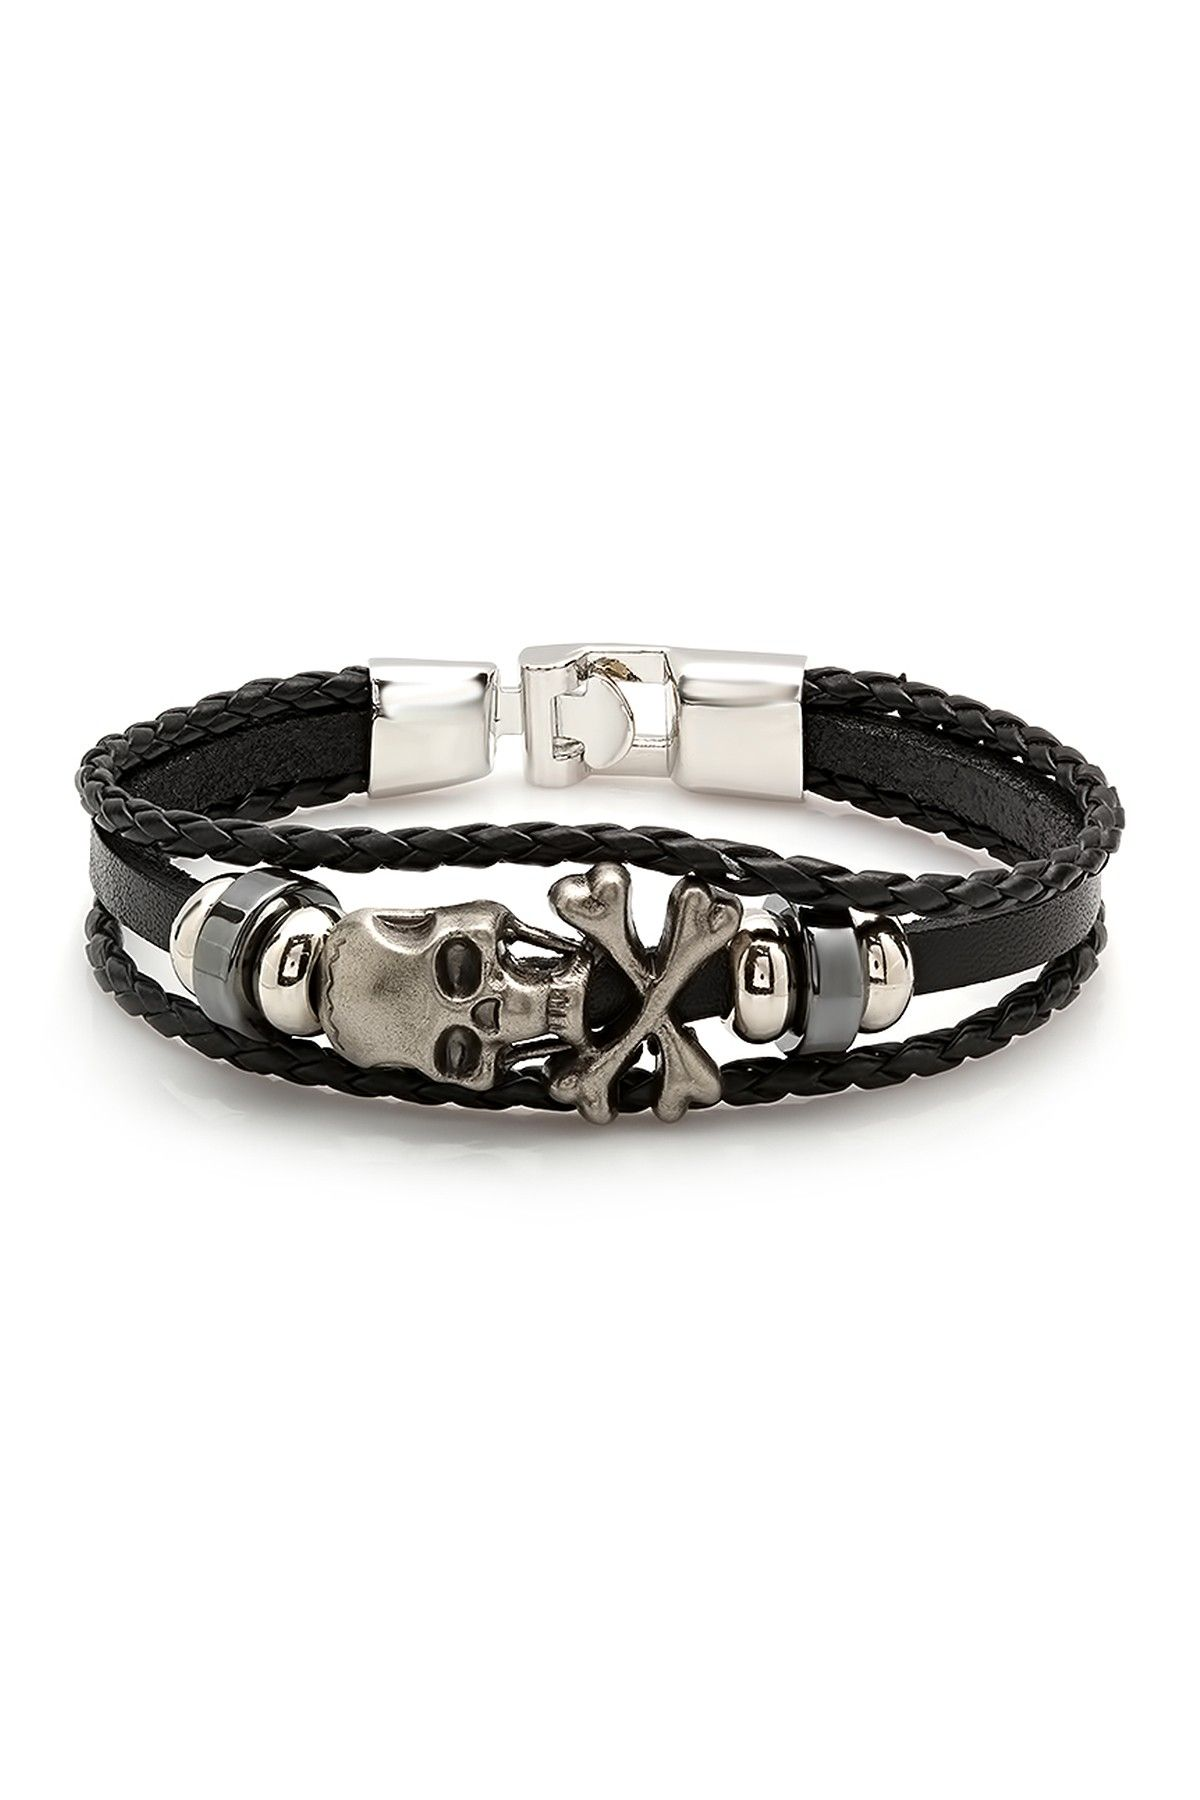 3378d01c719a Multi Strand Beaded Skull Leather Bracelet